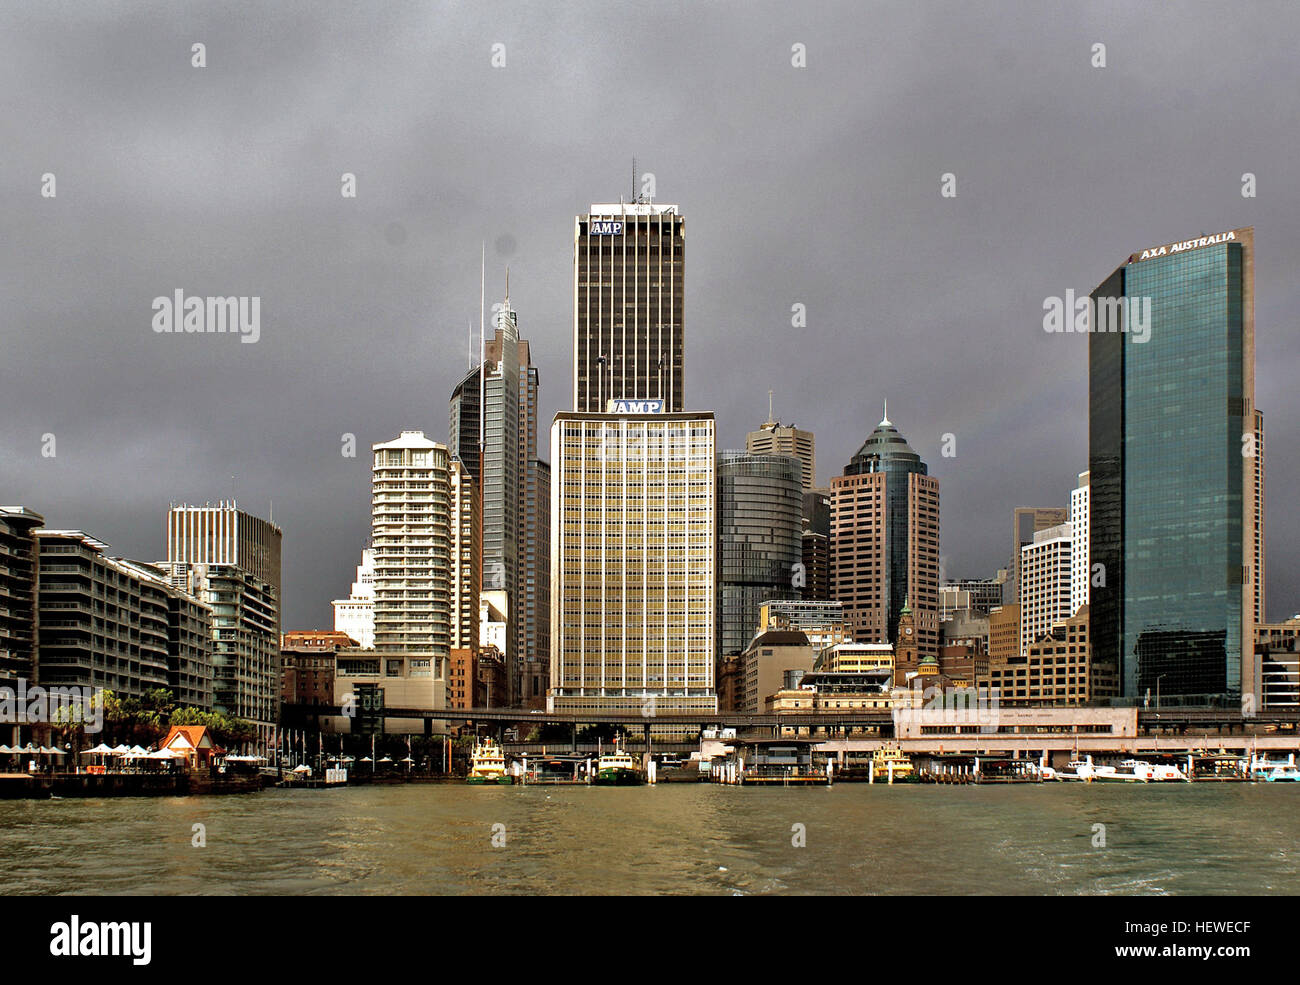 Circular Quay is the hub of Sydney Harbour, situated at a small inlet called Sydney Cove, the founding site for - Stock Image